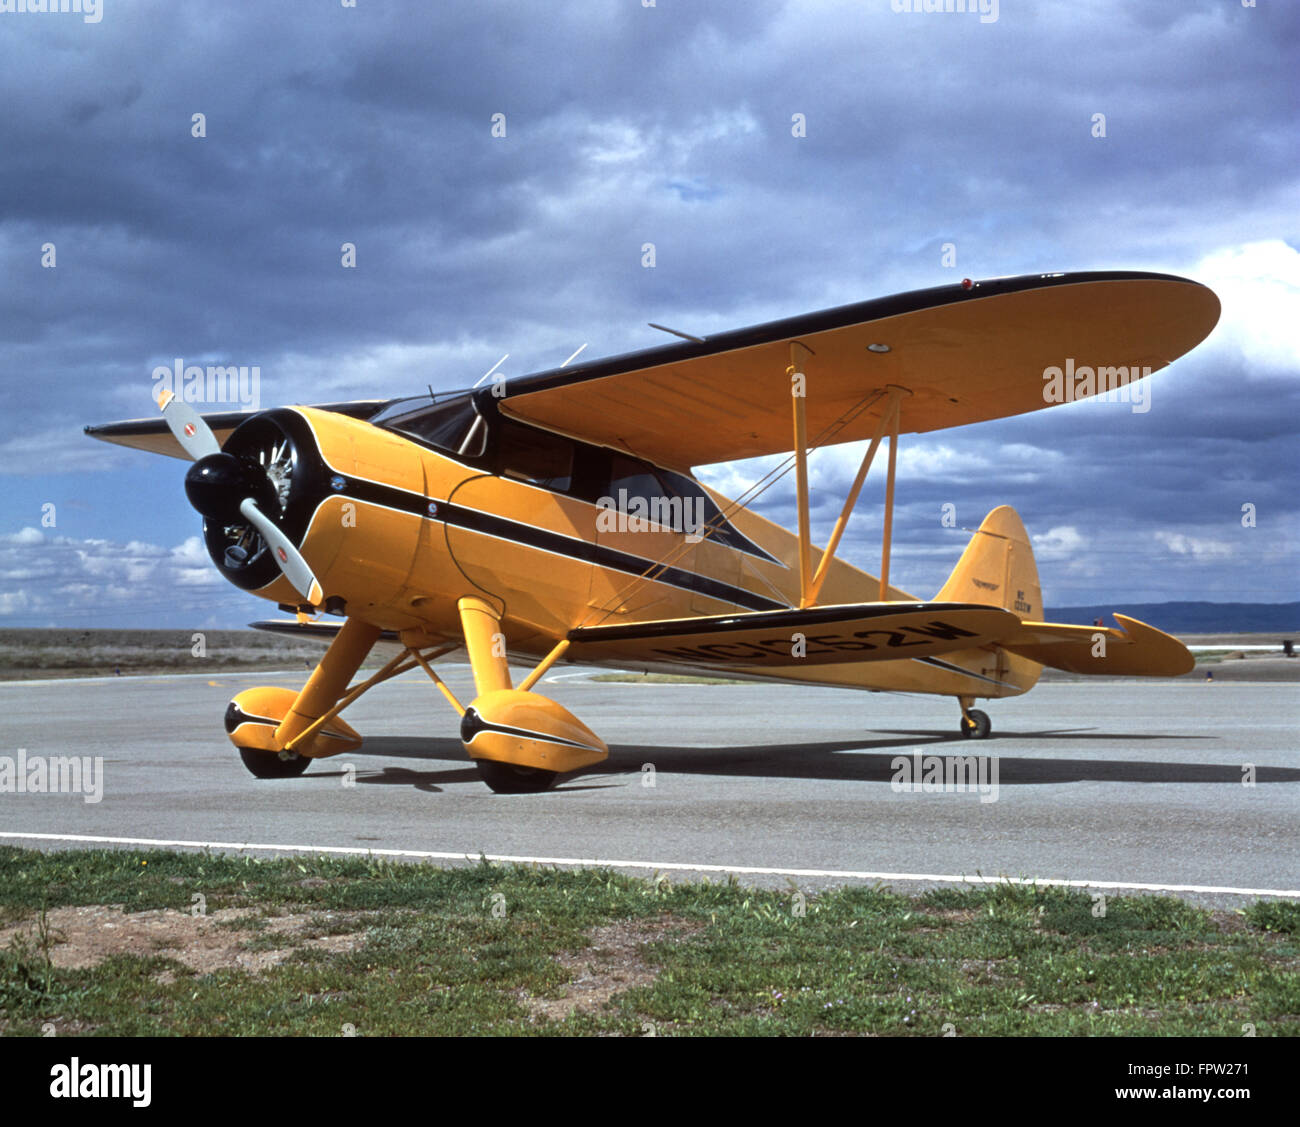 AIRPLANE YELLOW AND BLACK BI-PLANE  ON AIRPORT TARMAC - Stock Image